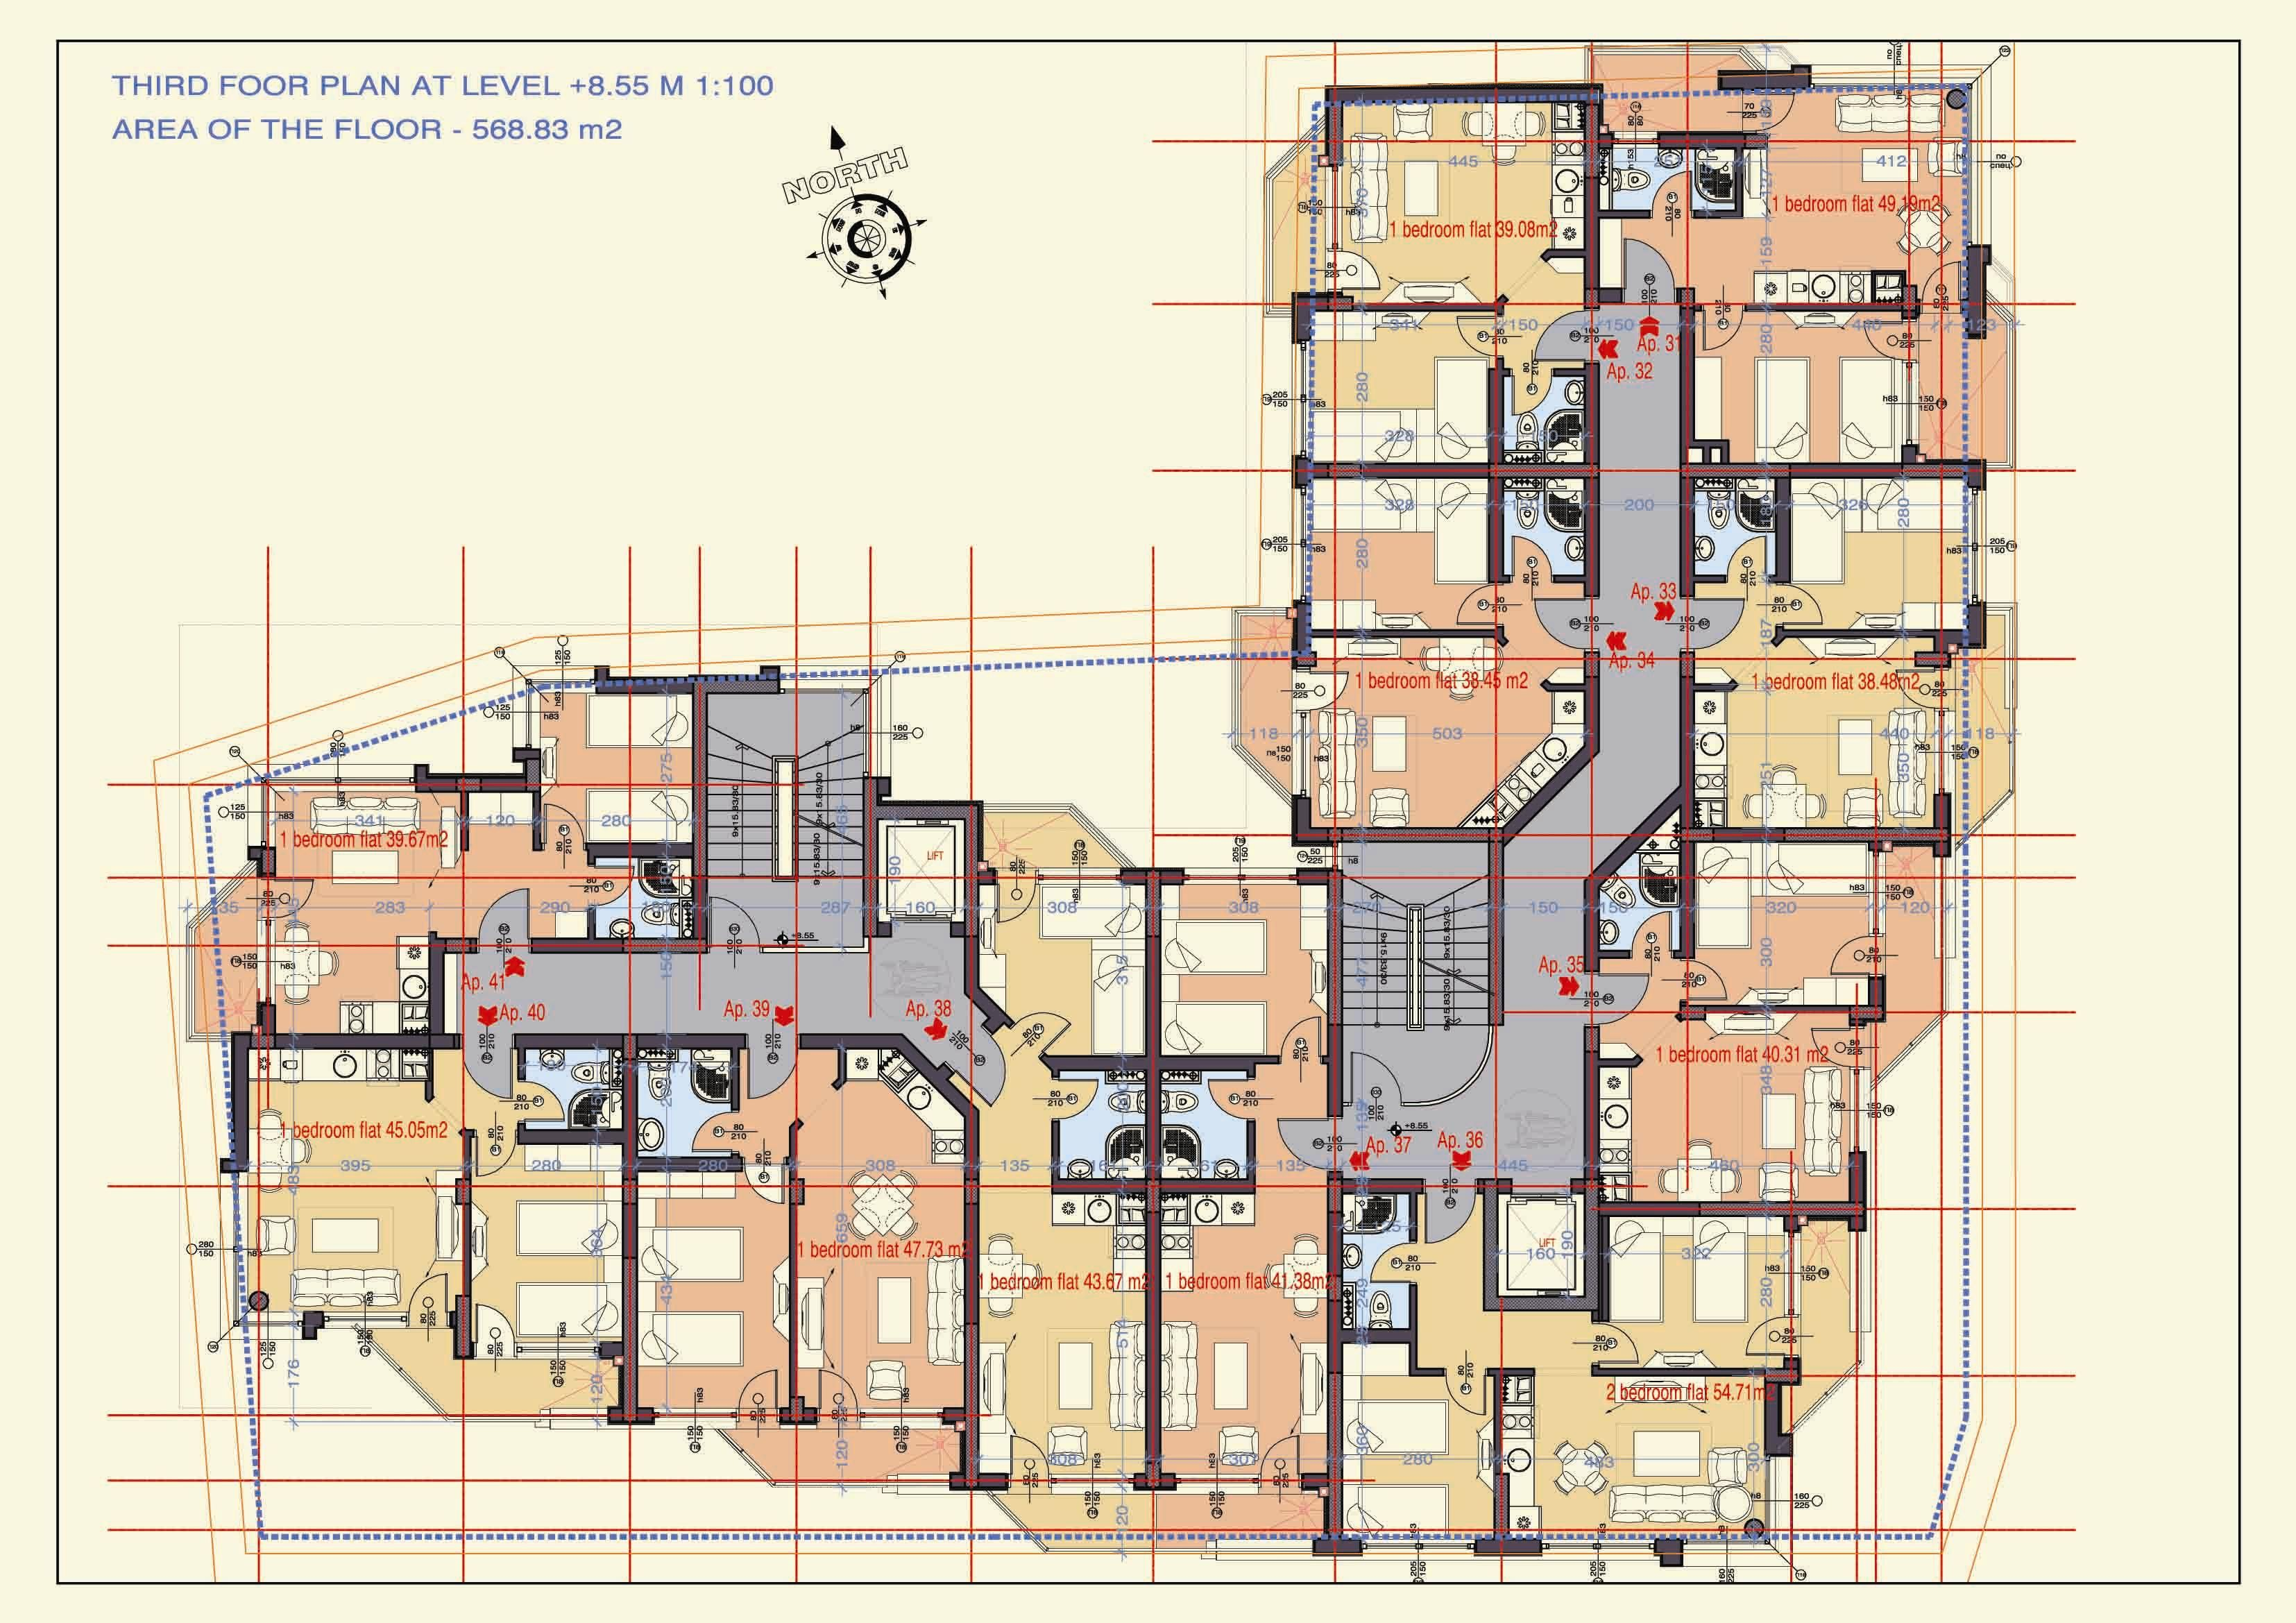 5 Star Hotel Room Floor Plans B 5 Star Hotel Floor Plans B Pdf